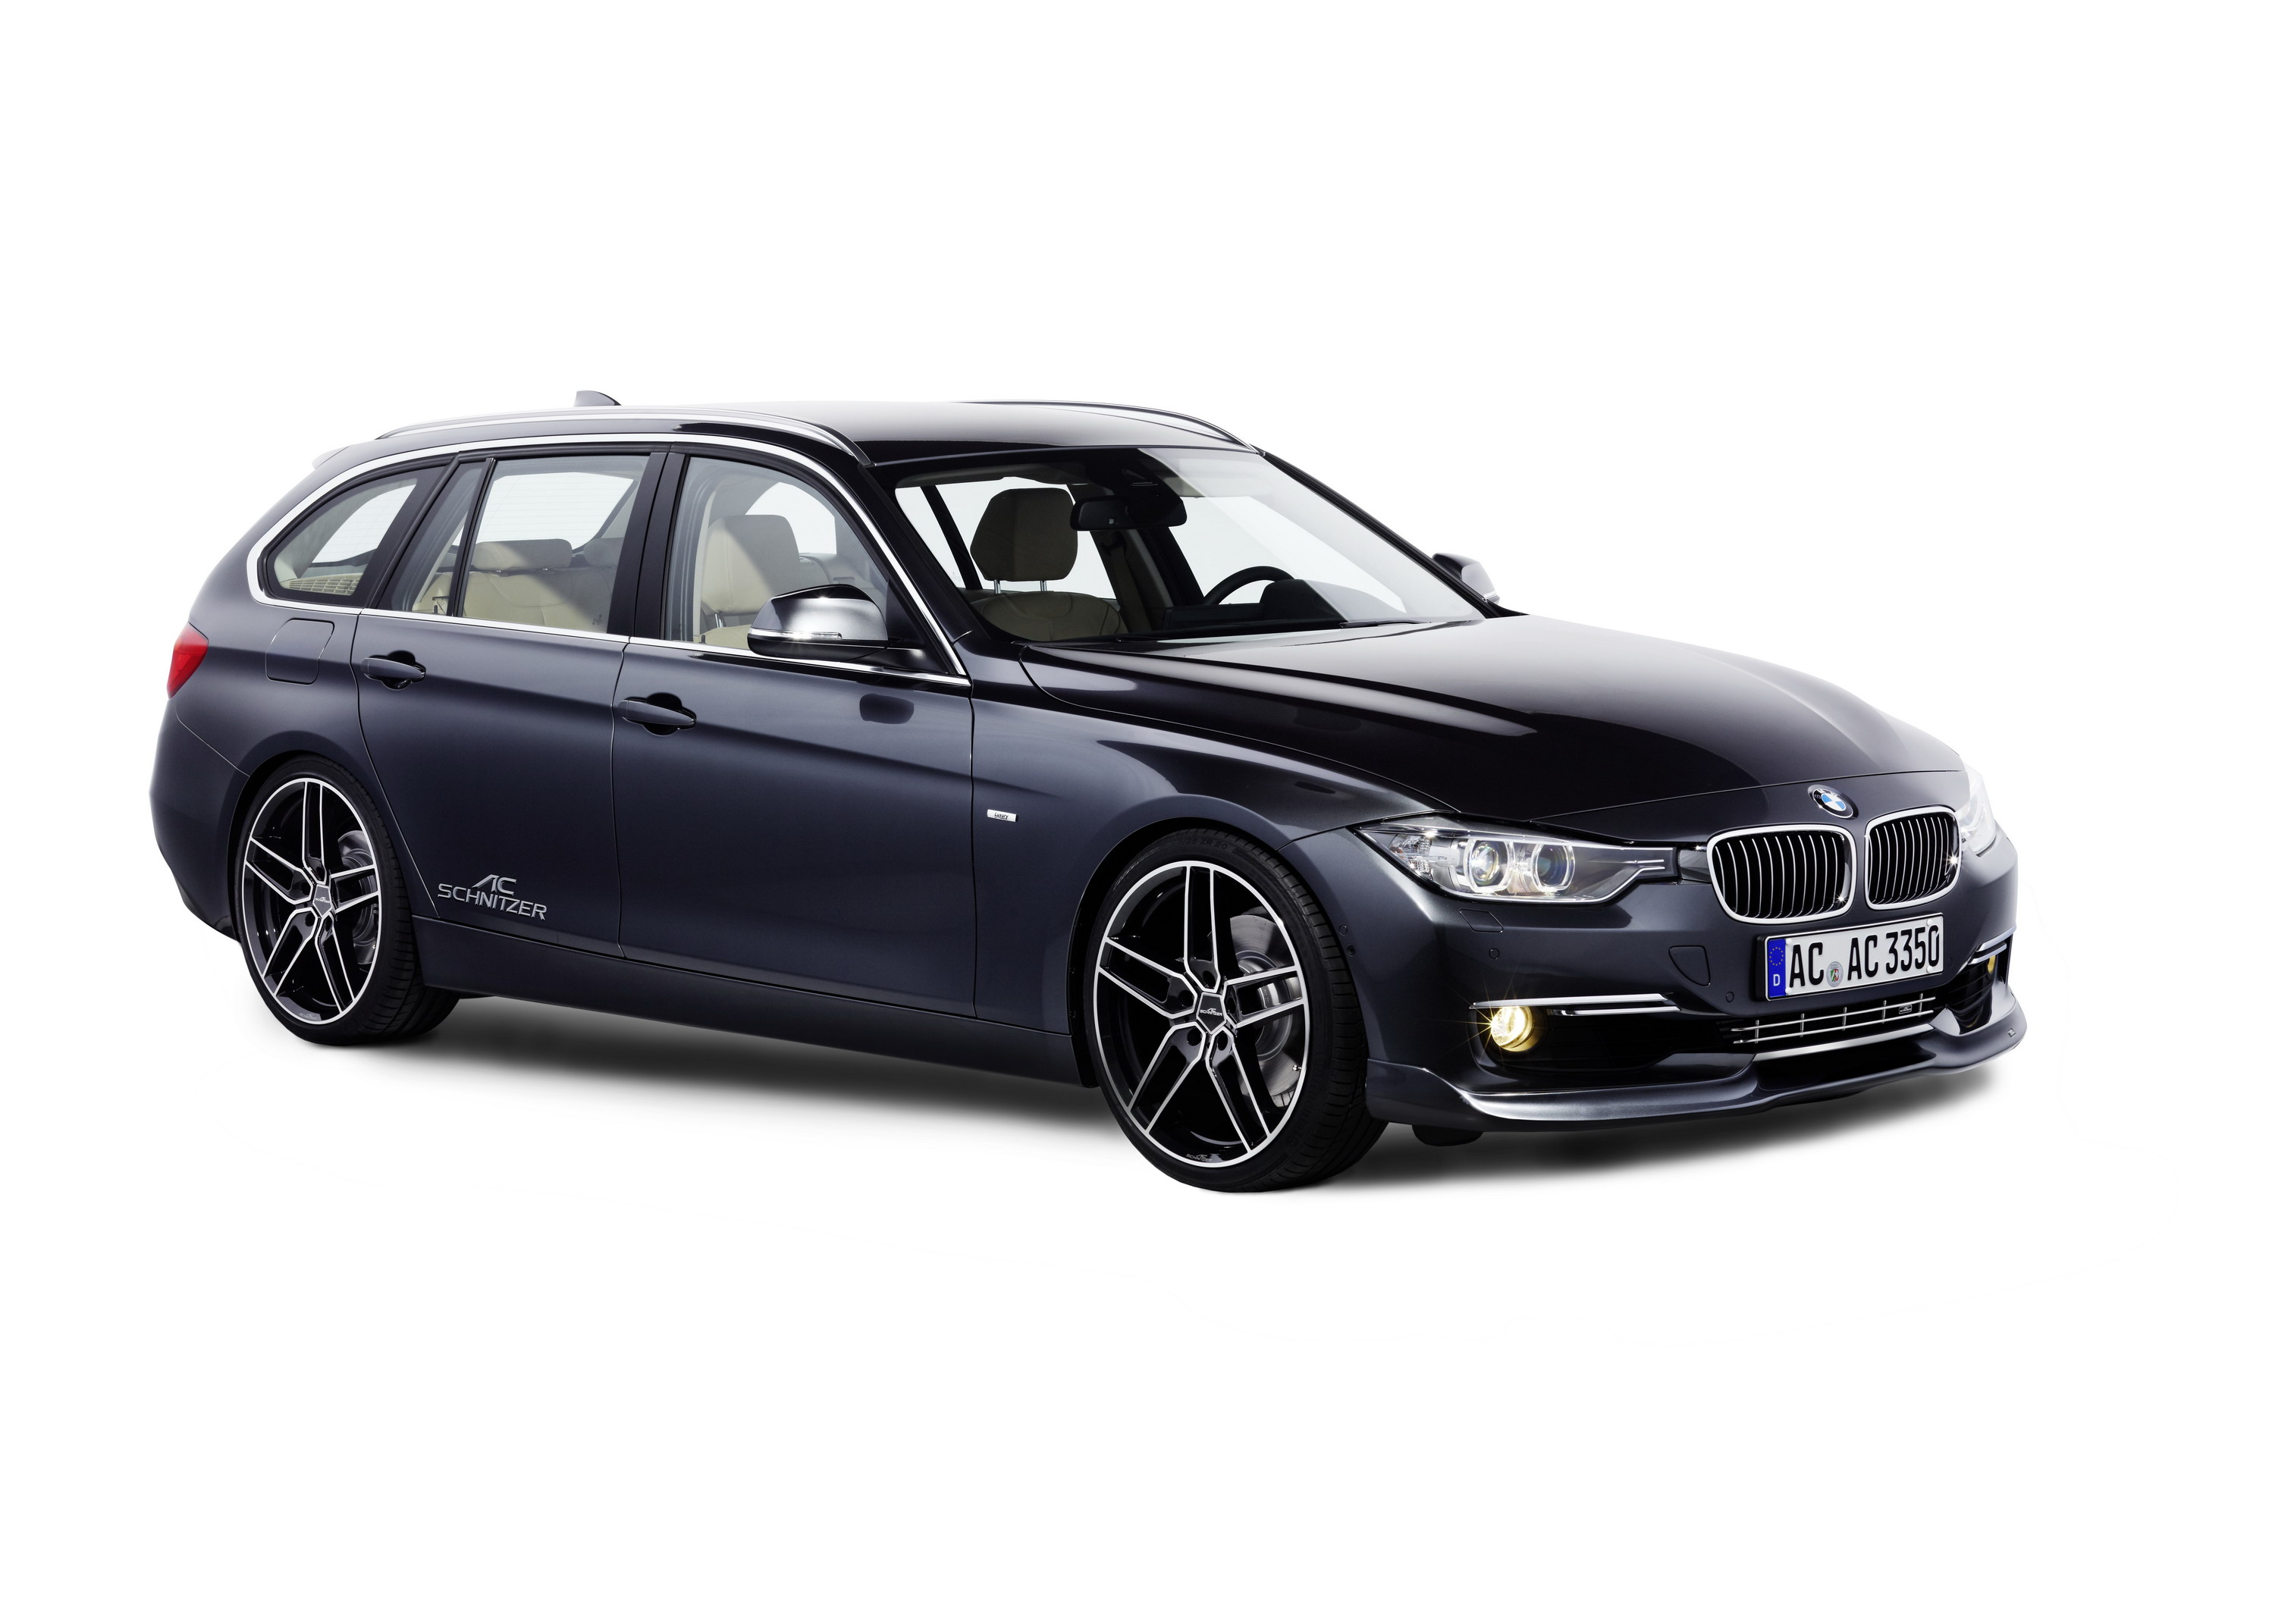 2013 bmw 3 series touring by ac schnitzer review top speed. Black Bedroom Furniture Sets. Home Design Ideas